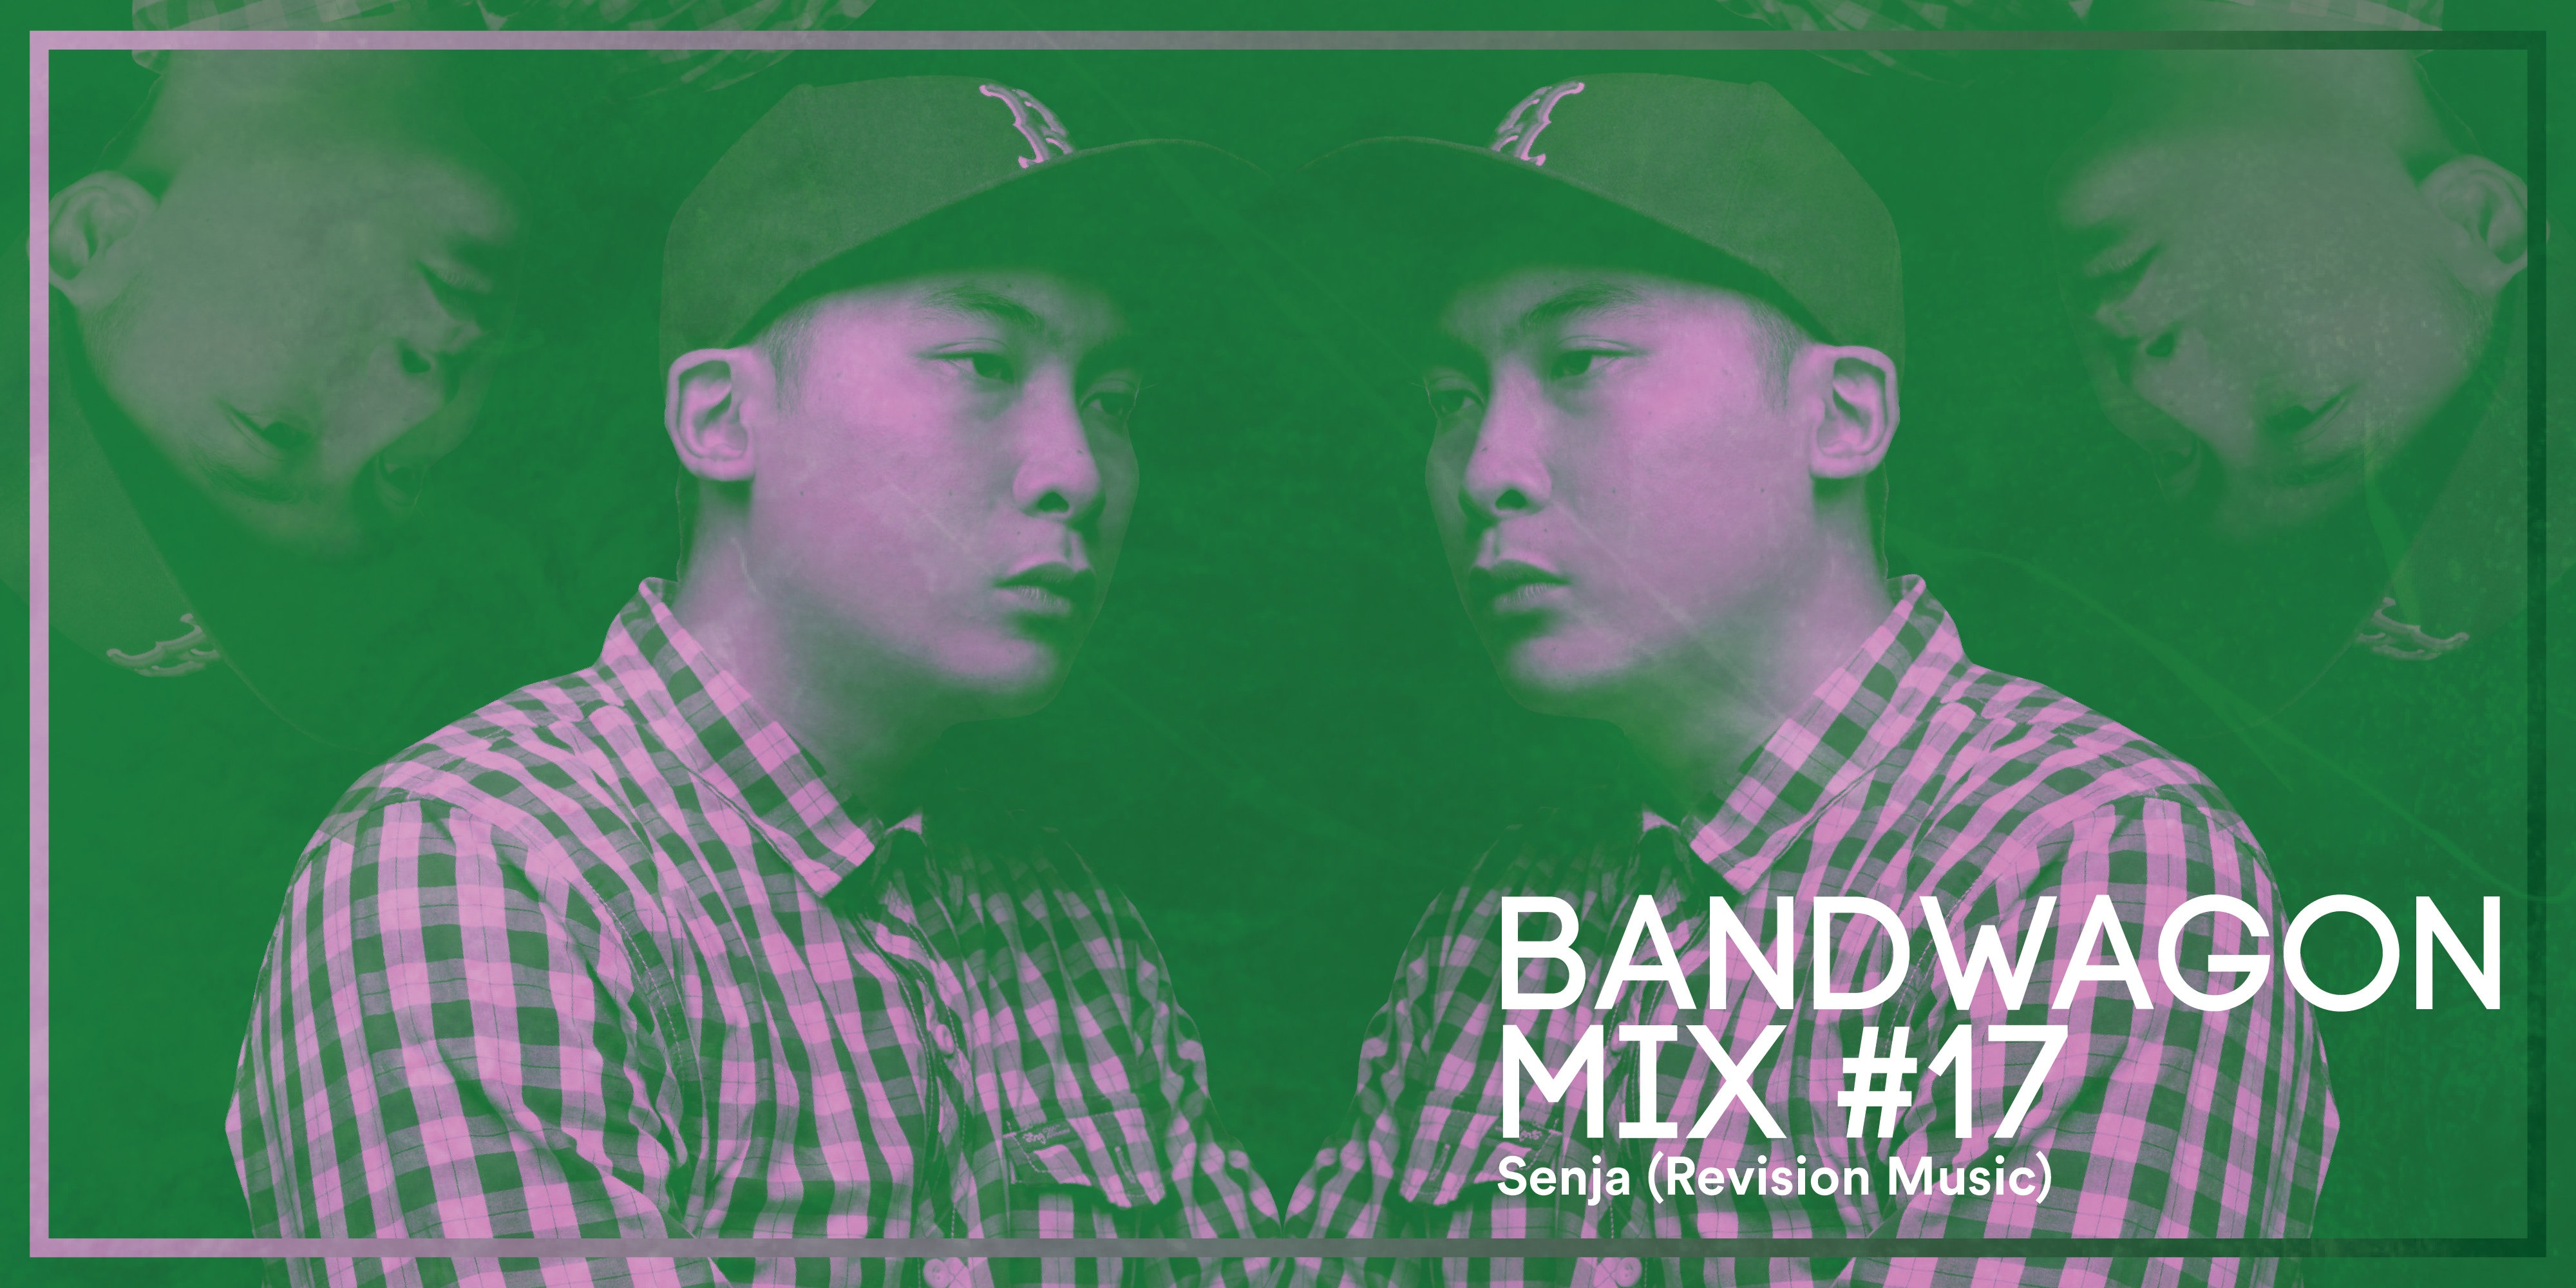 Bandwagon Mix #17: Senja (Revision Music)